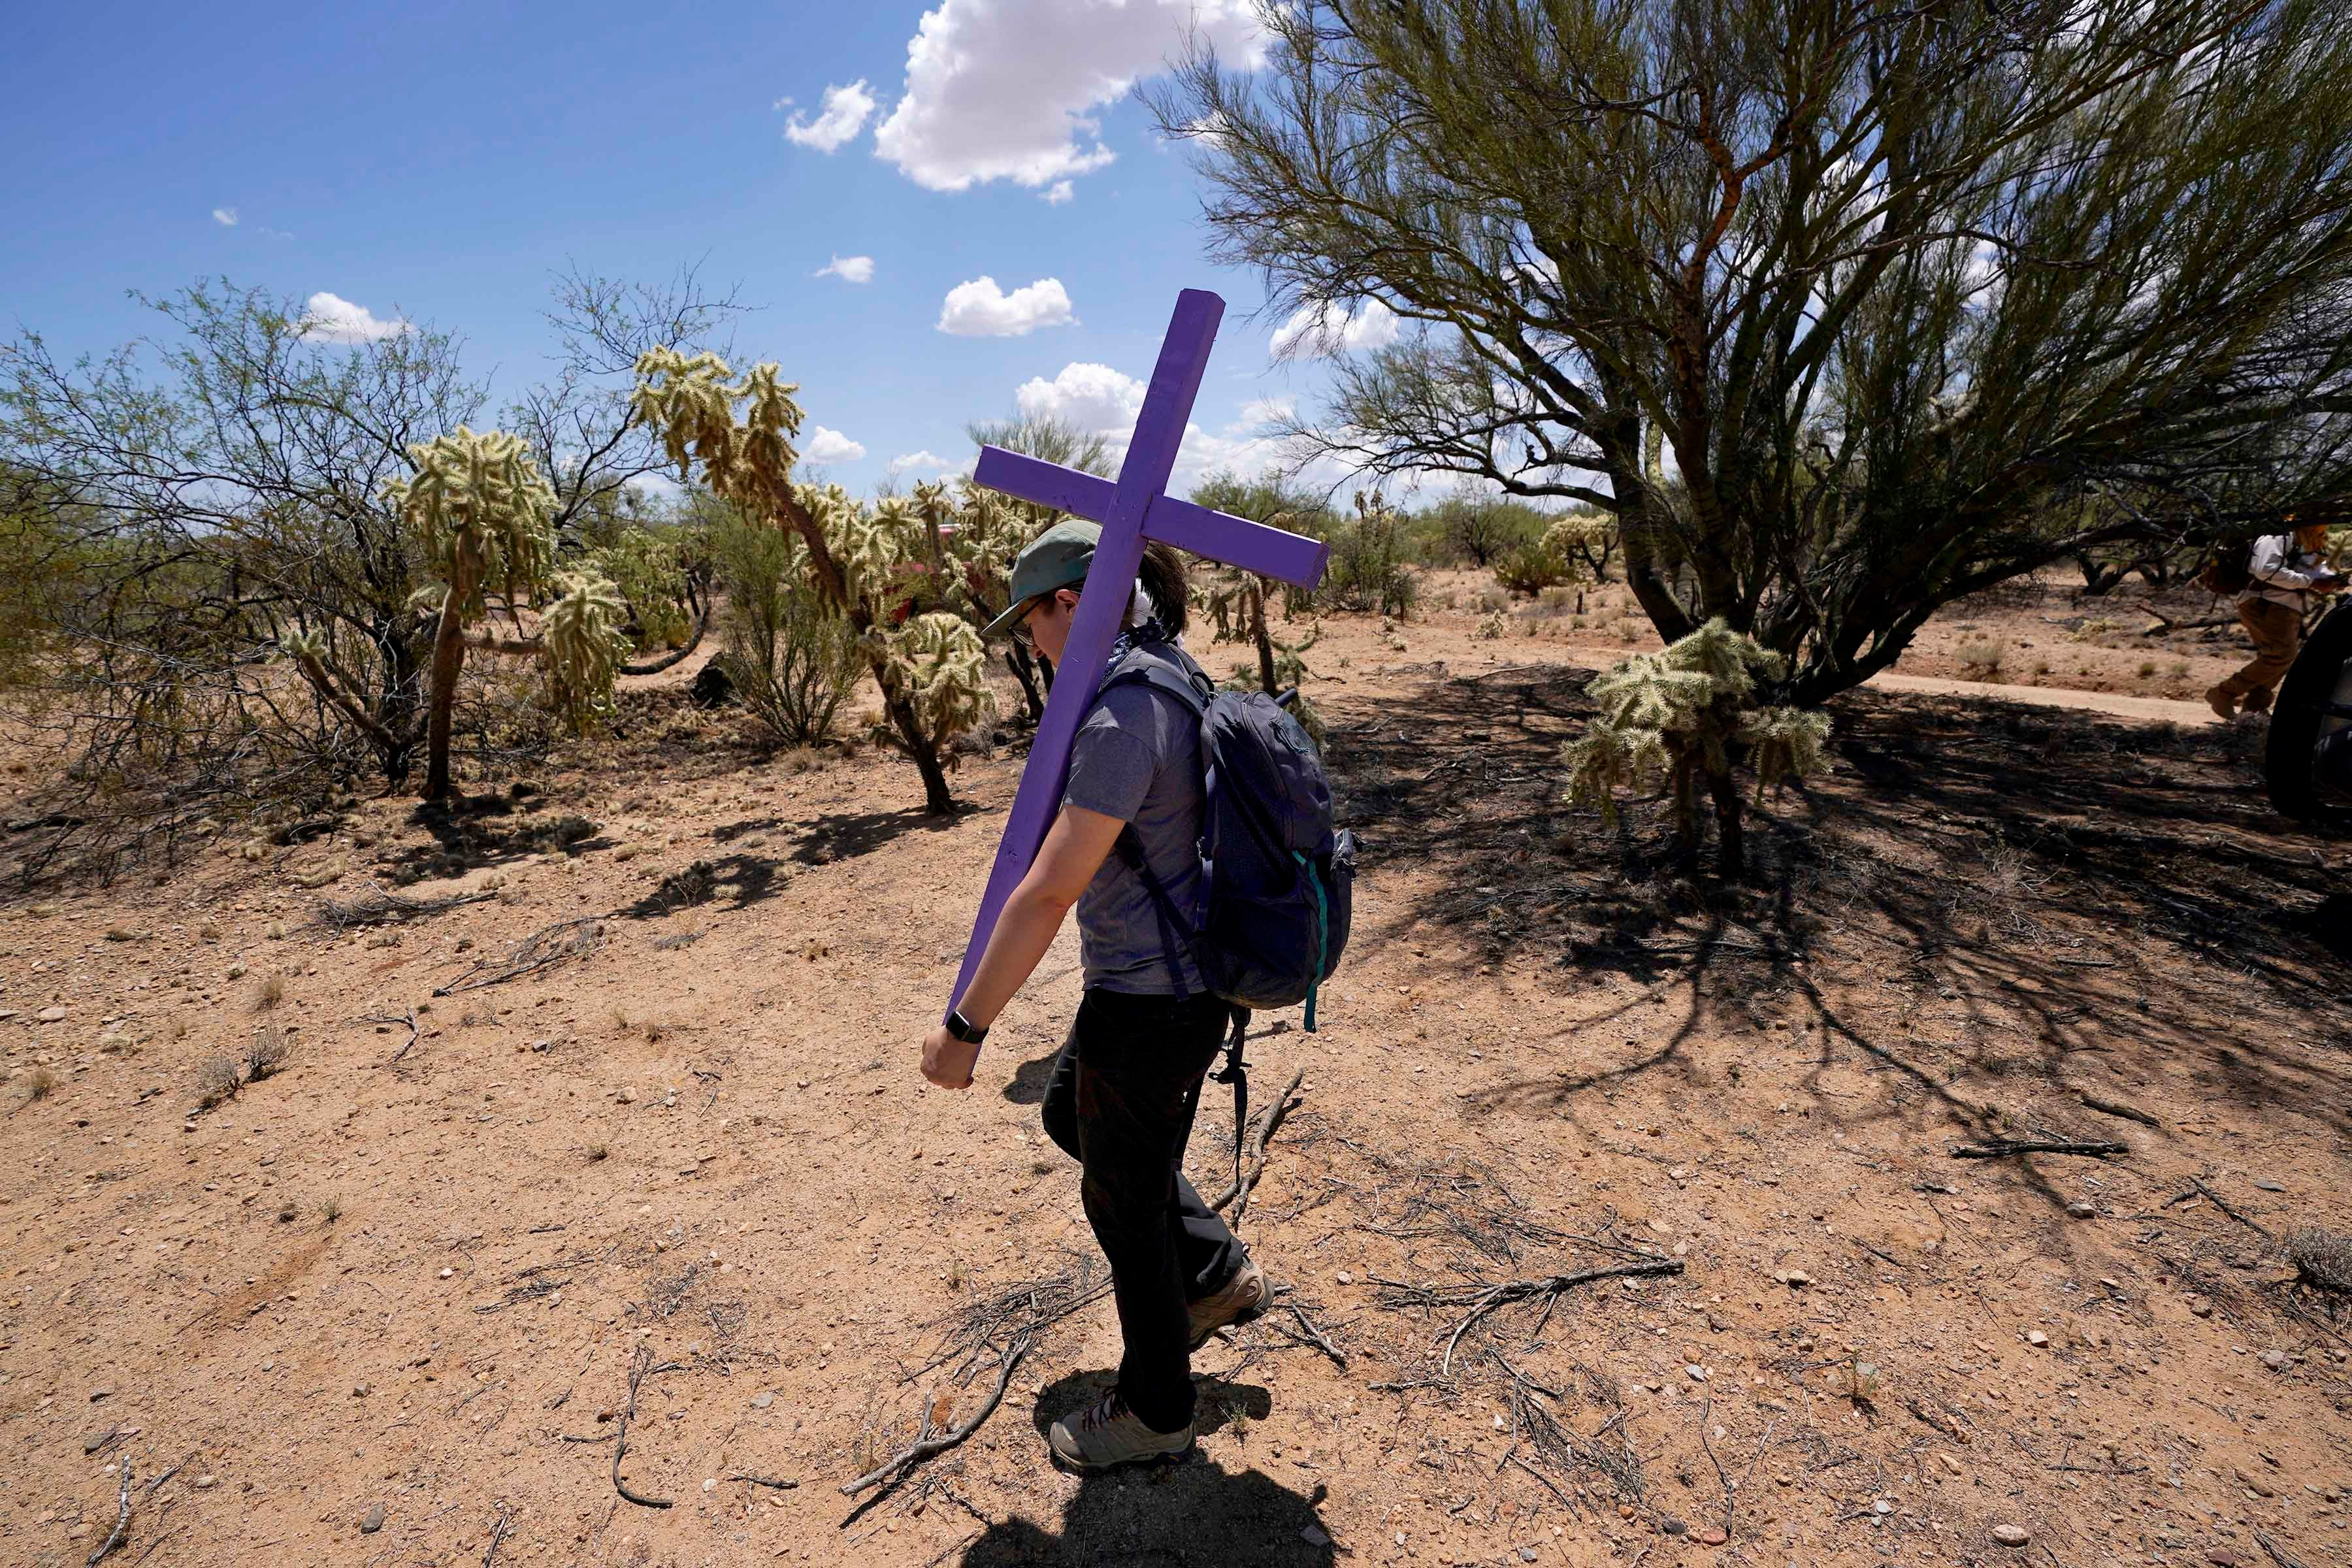 US: Extreme Heat Should Prompt New Border Approach